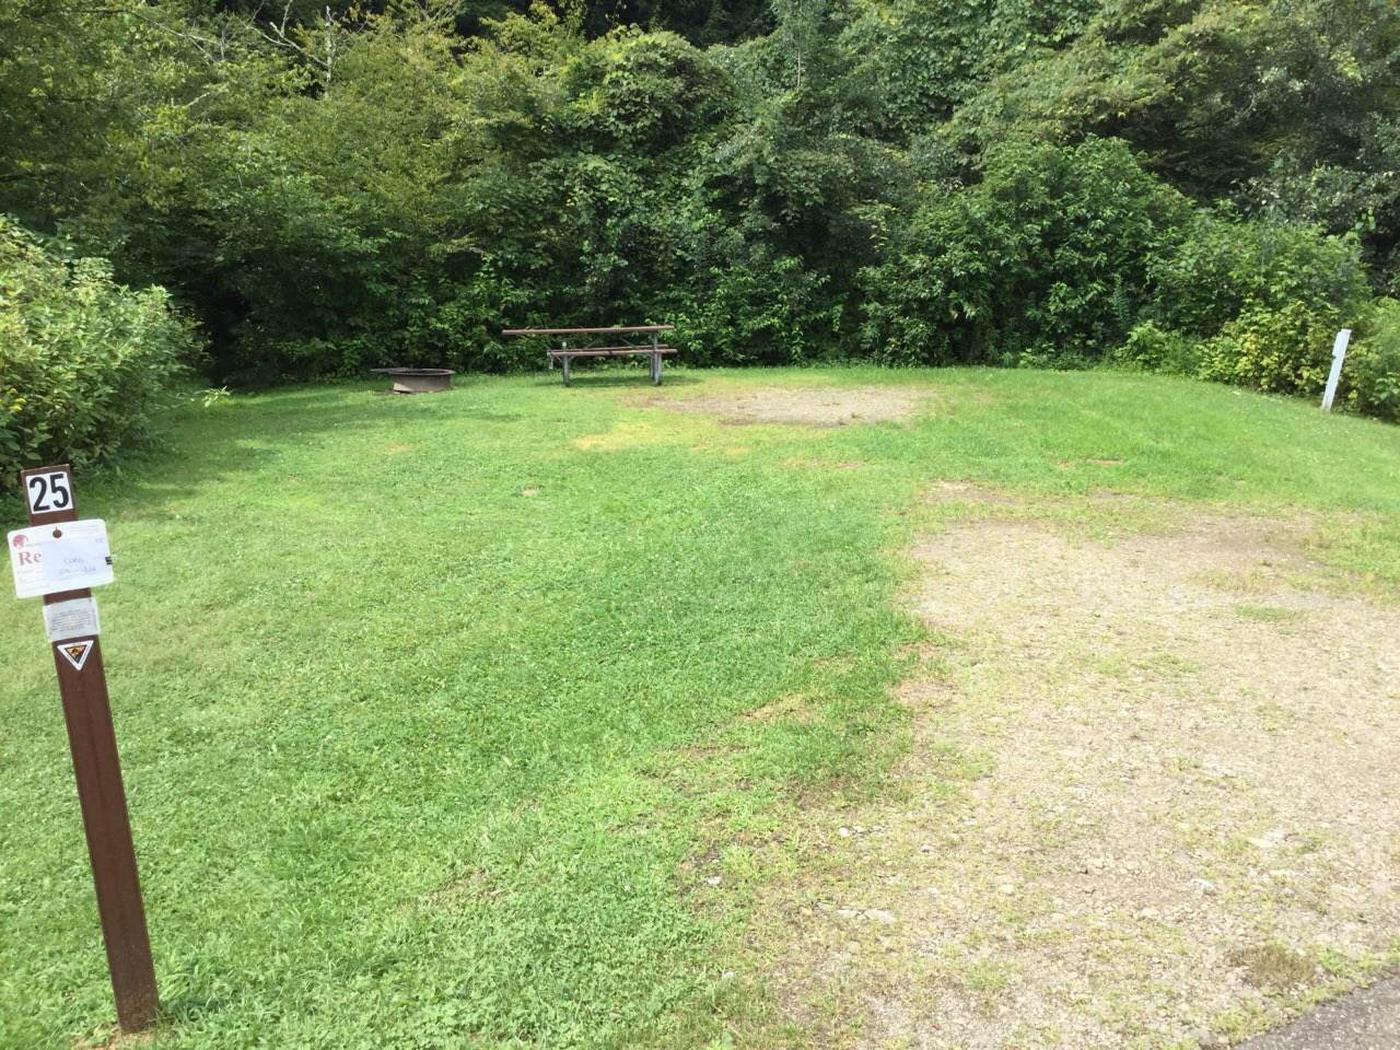 Willow Bay Recreation Area: Site 25